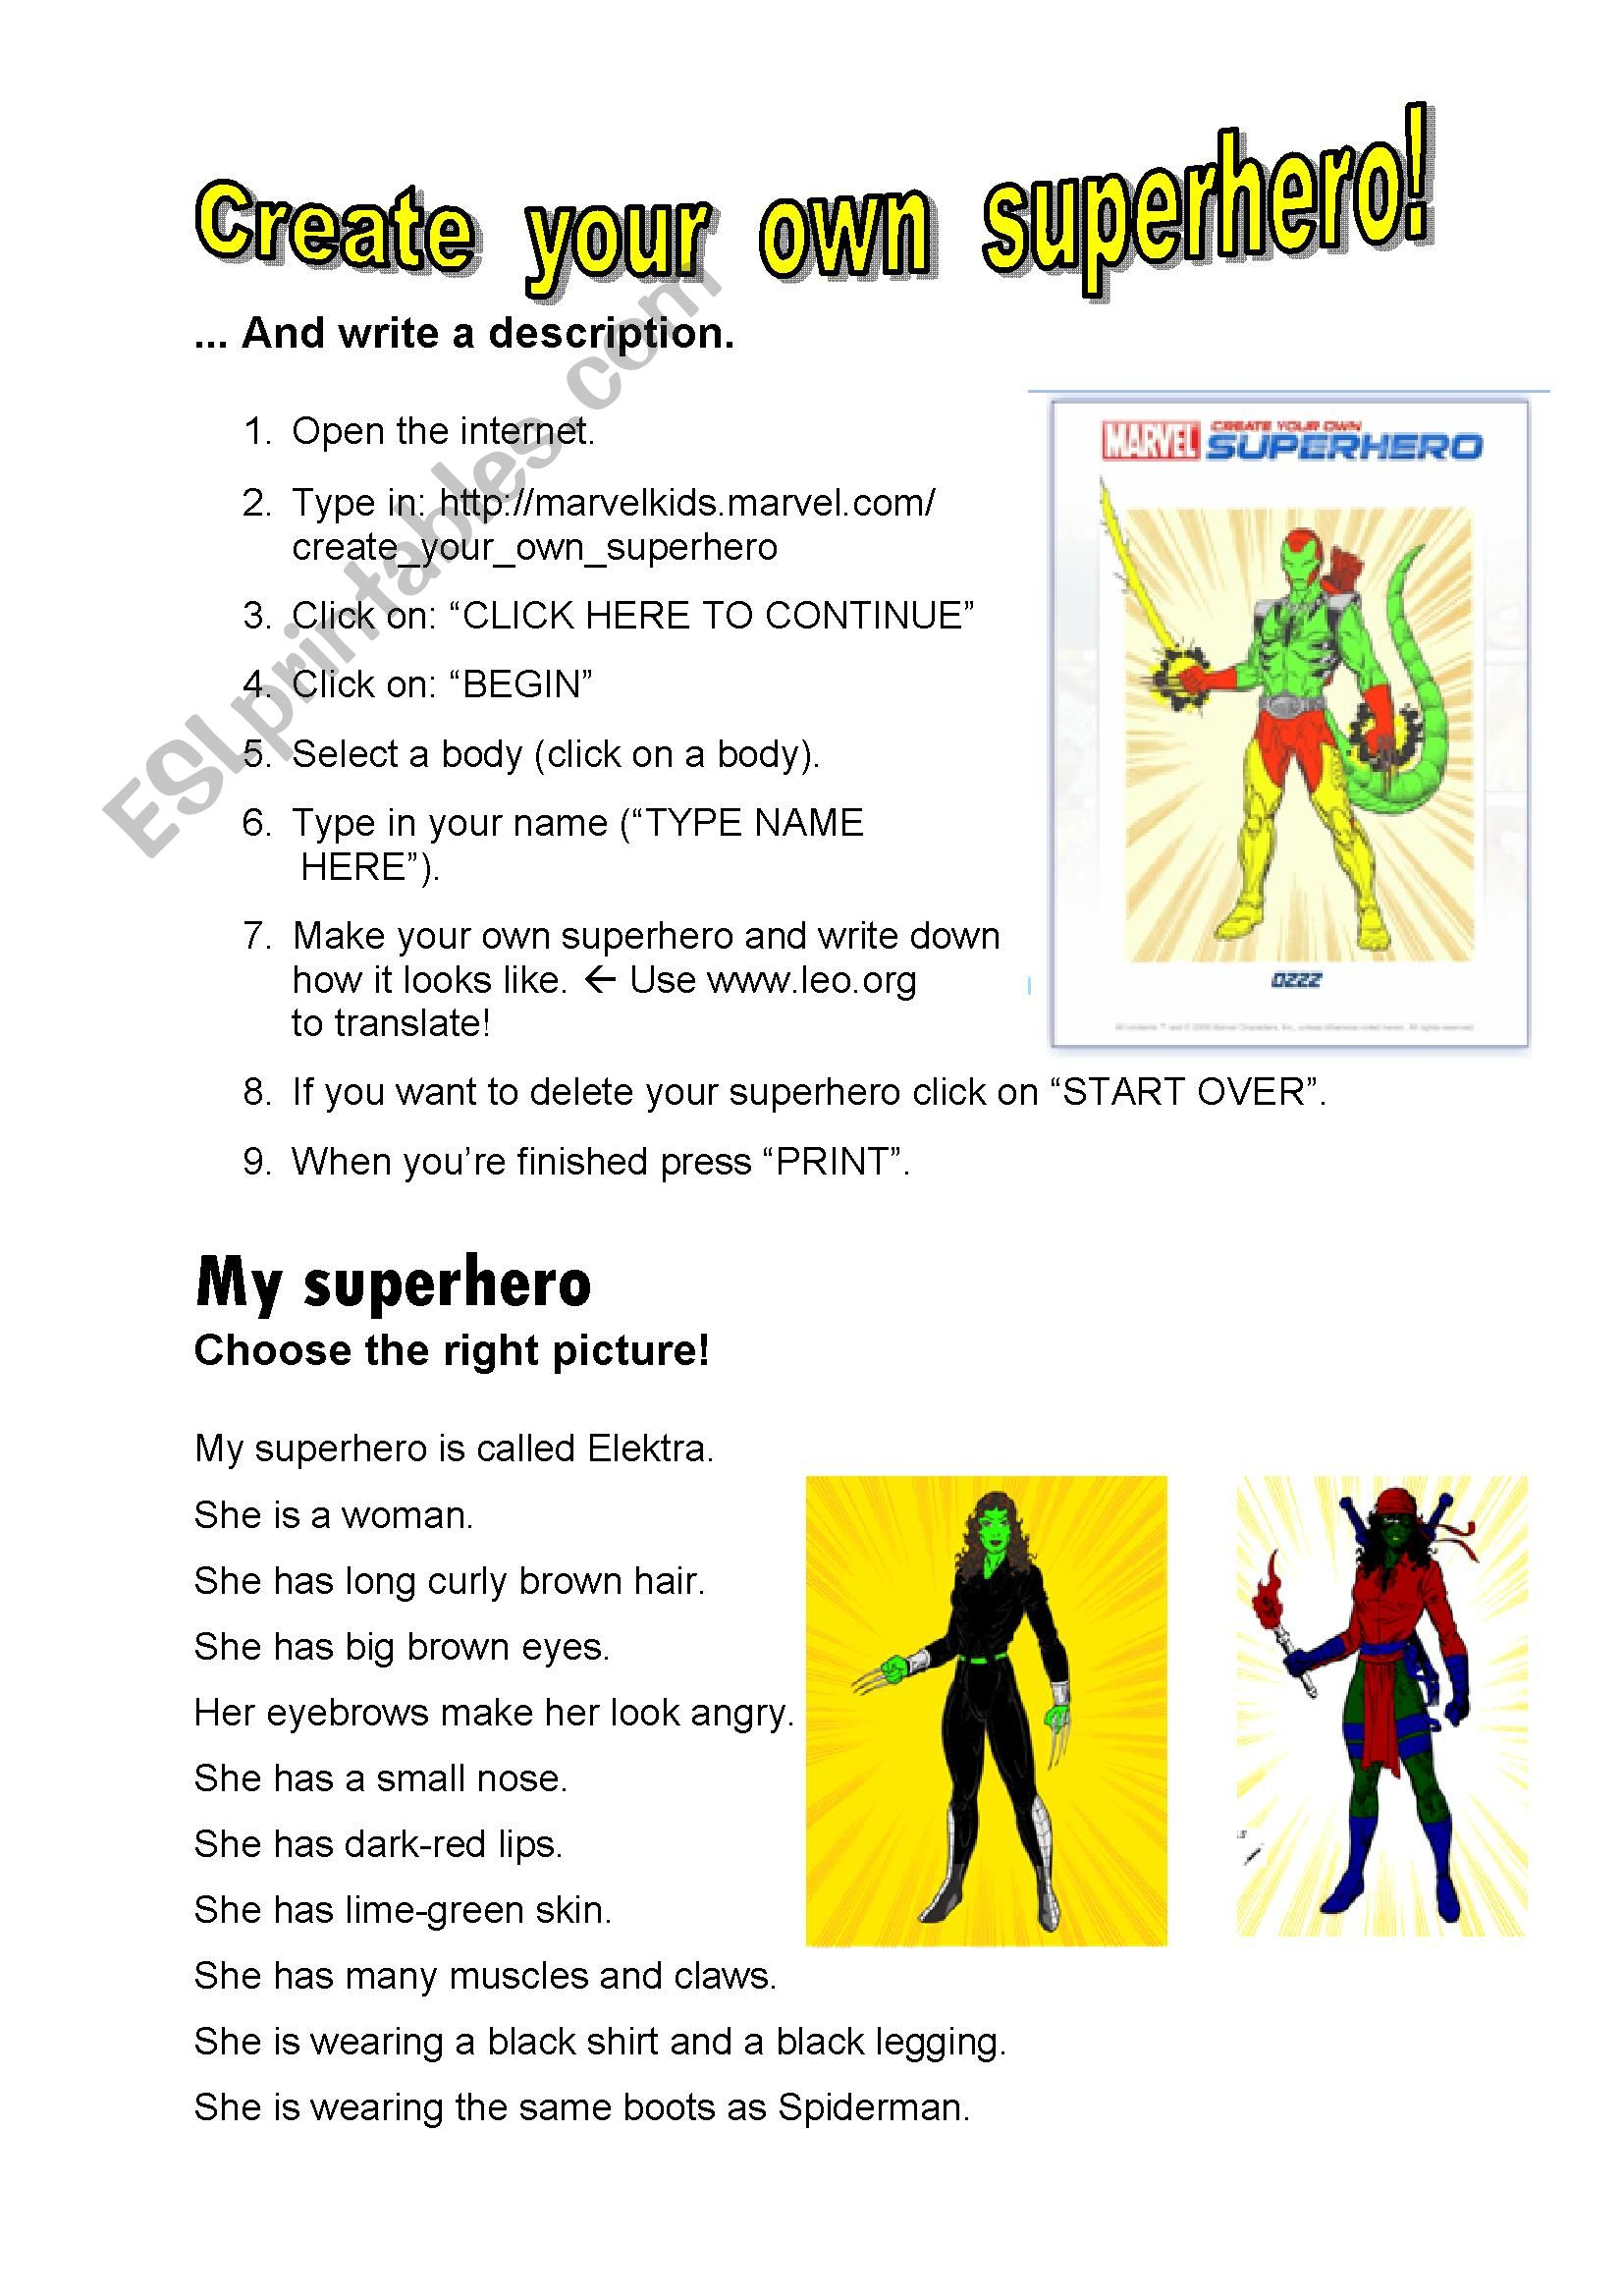 Create Your Own Superhero Key